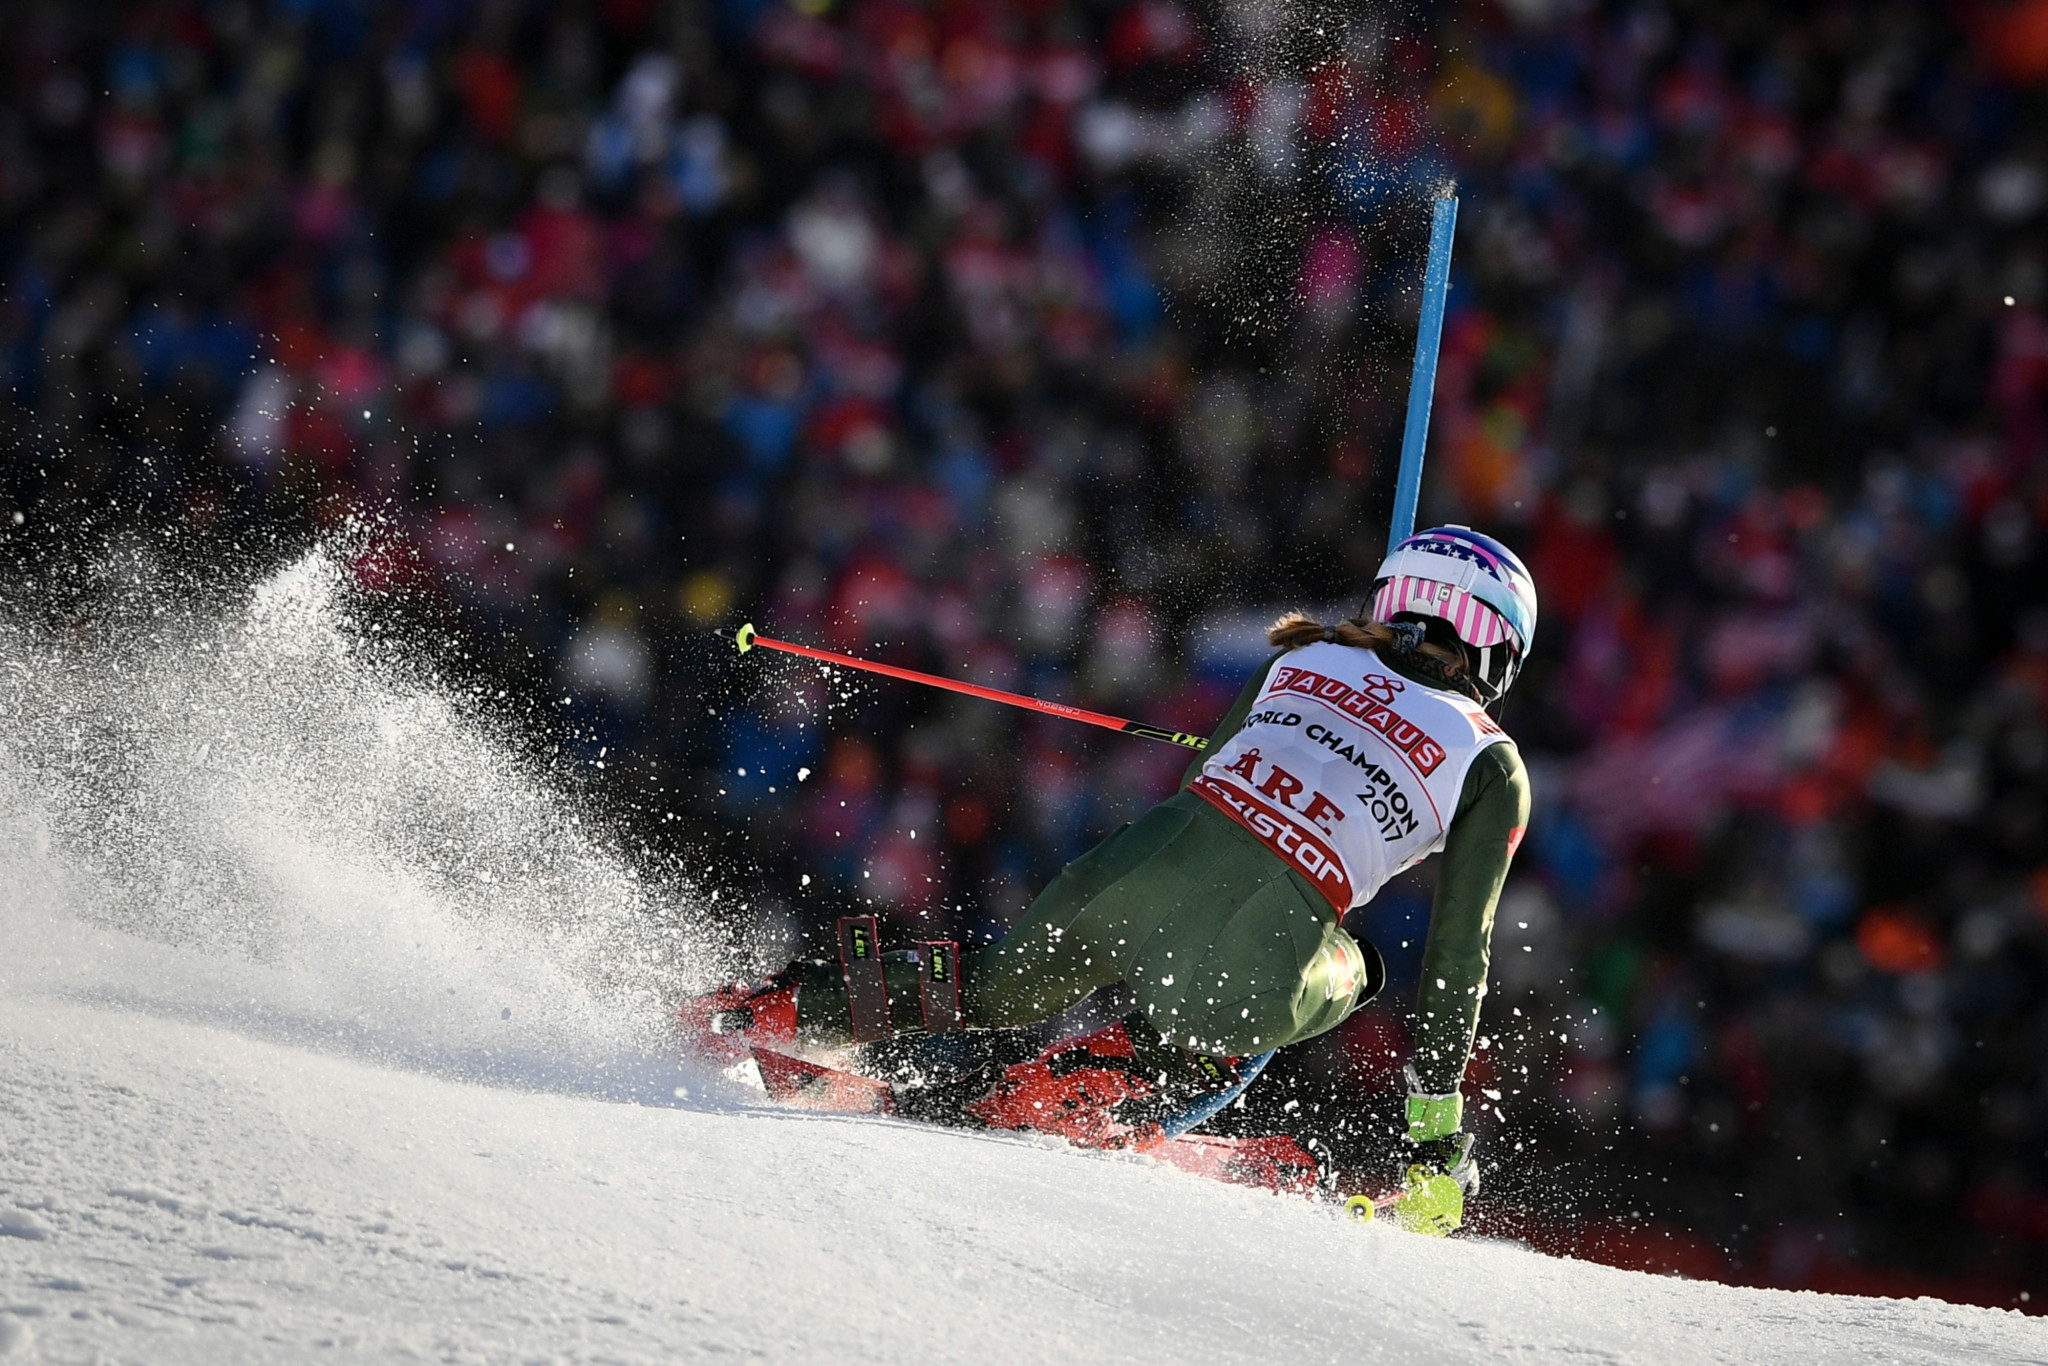 America's Mikaela Shiffrin was criticial of conditions during this year's FIS Alpine World Ski Championships in Åre ©Getty Images